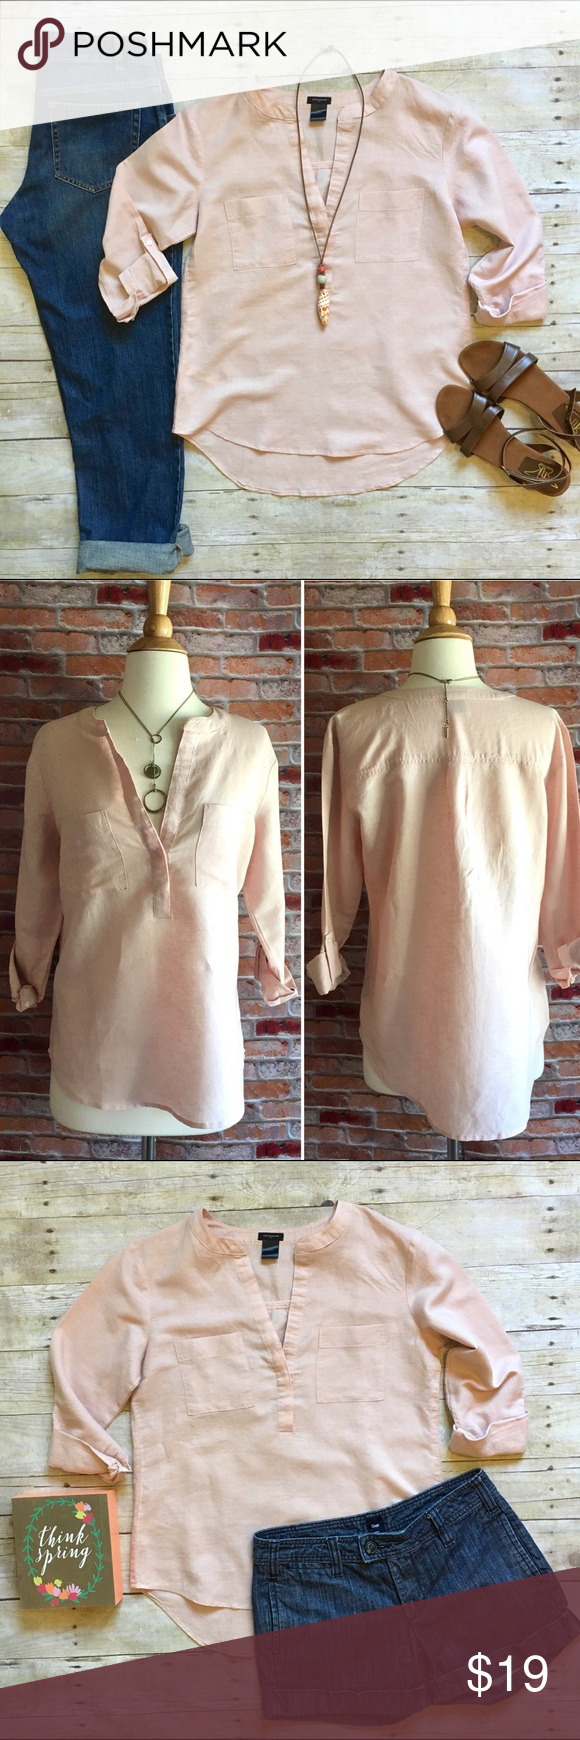 """Ann Taylor blush split neck lined blend Tunic Crisp linen blend Tunic with split neck and rolled sleeves with button tab. Bust pockets. Pair with denim (as shown, all pairs in pics also available in my closet, buy the look and save!) or khaki shorts for a classic chic look! In like new condition. 60/40 linen, cotton. 26""""L in fron, 29""""L in back. Size Small. Ann Taylor Tops Tunics"""